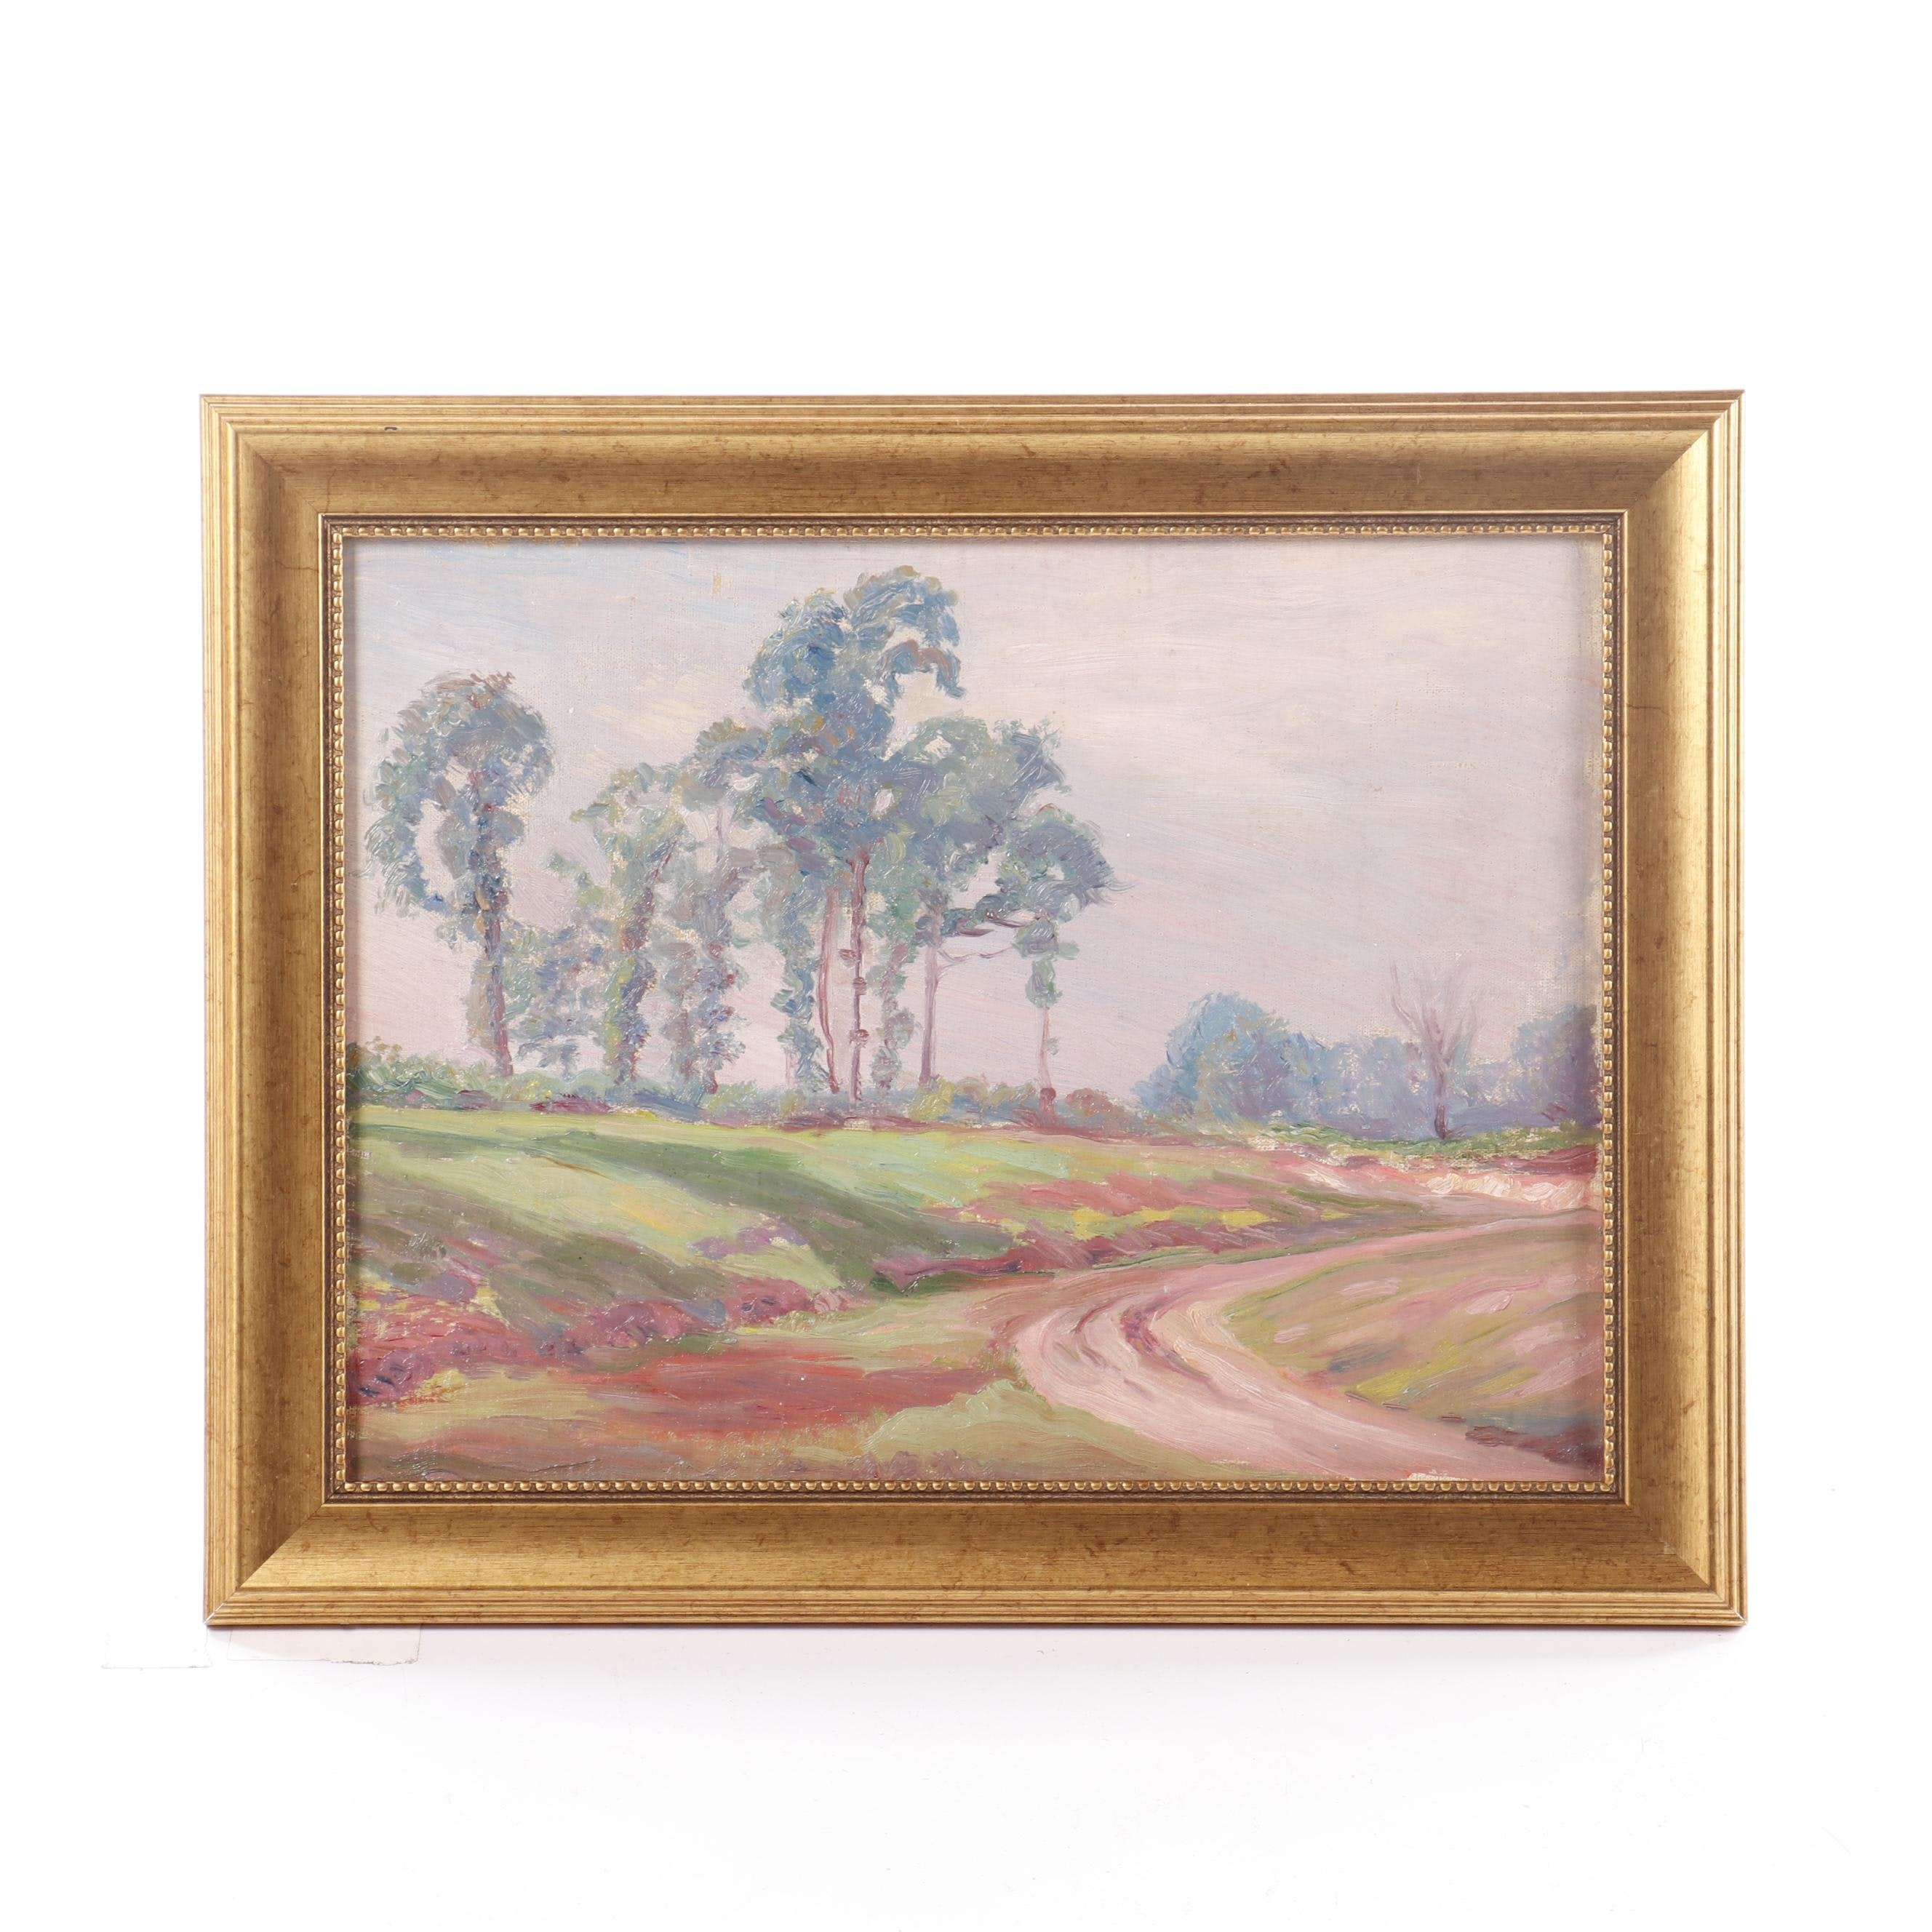 Landscape Oil Painting in the Manner of George Raab